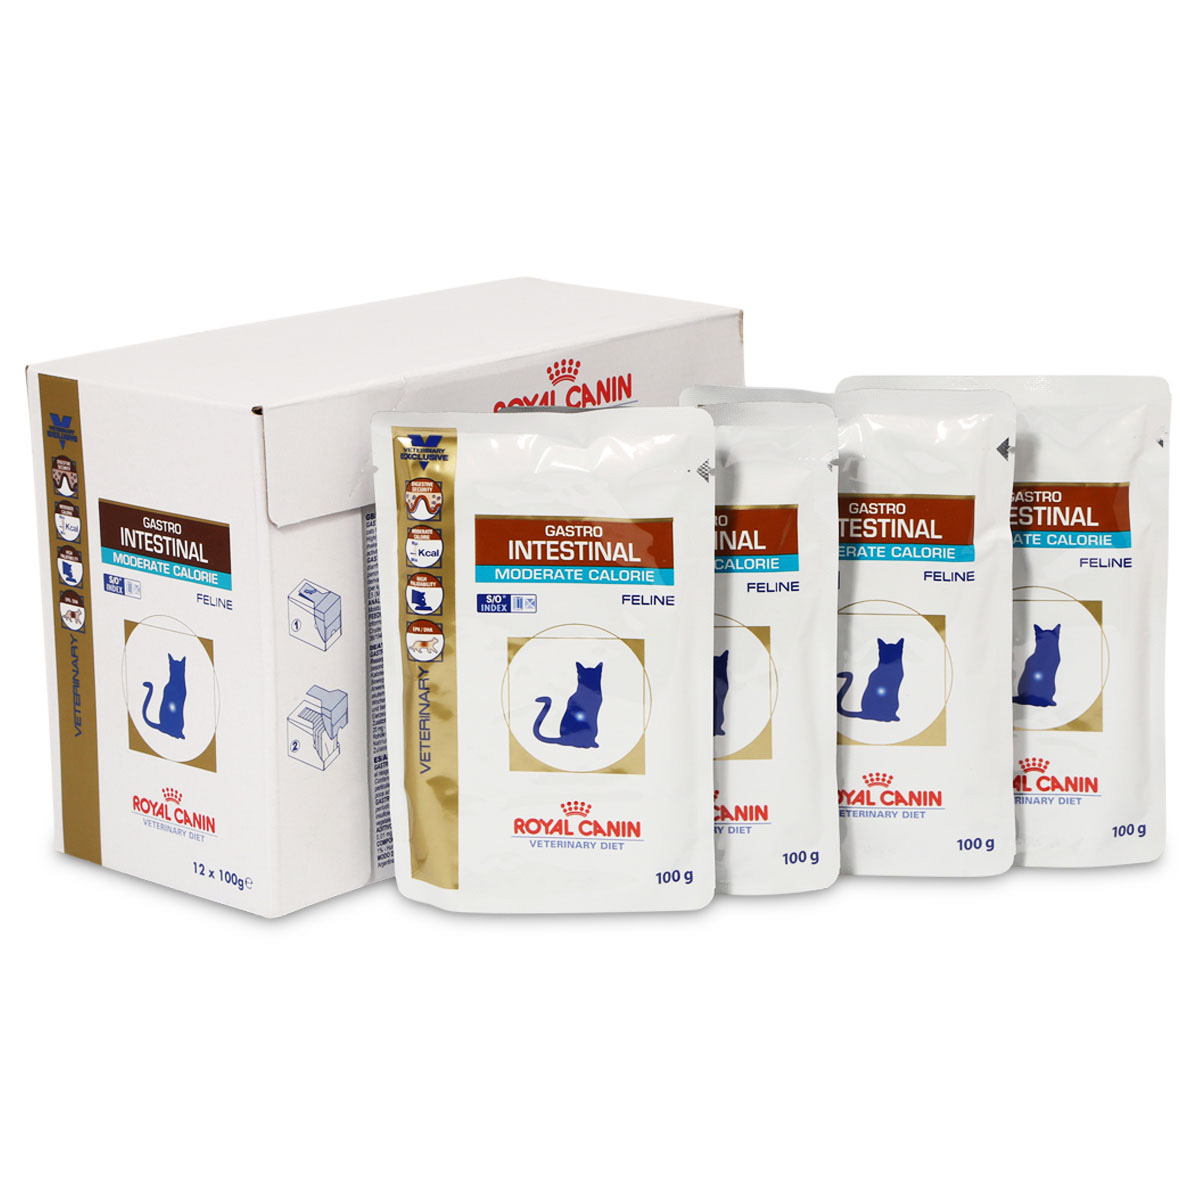 royal canin vet diet nassfutter gastro intestinal moderate. Black Bedroom Furniture Sets. Home Design Ideas